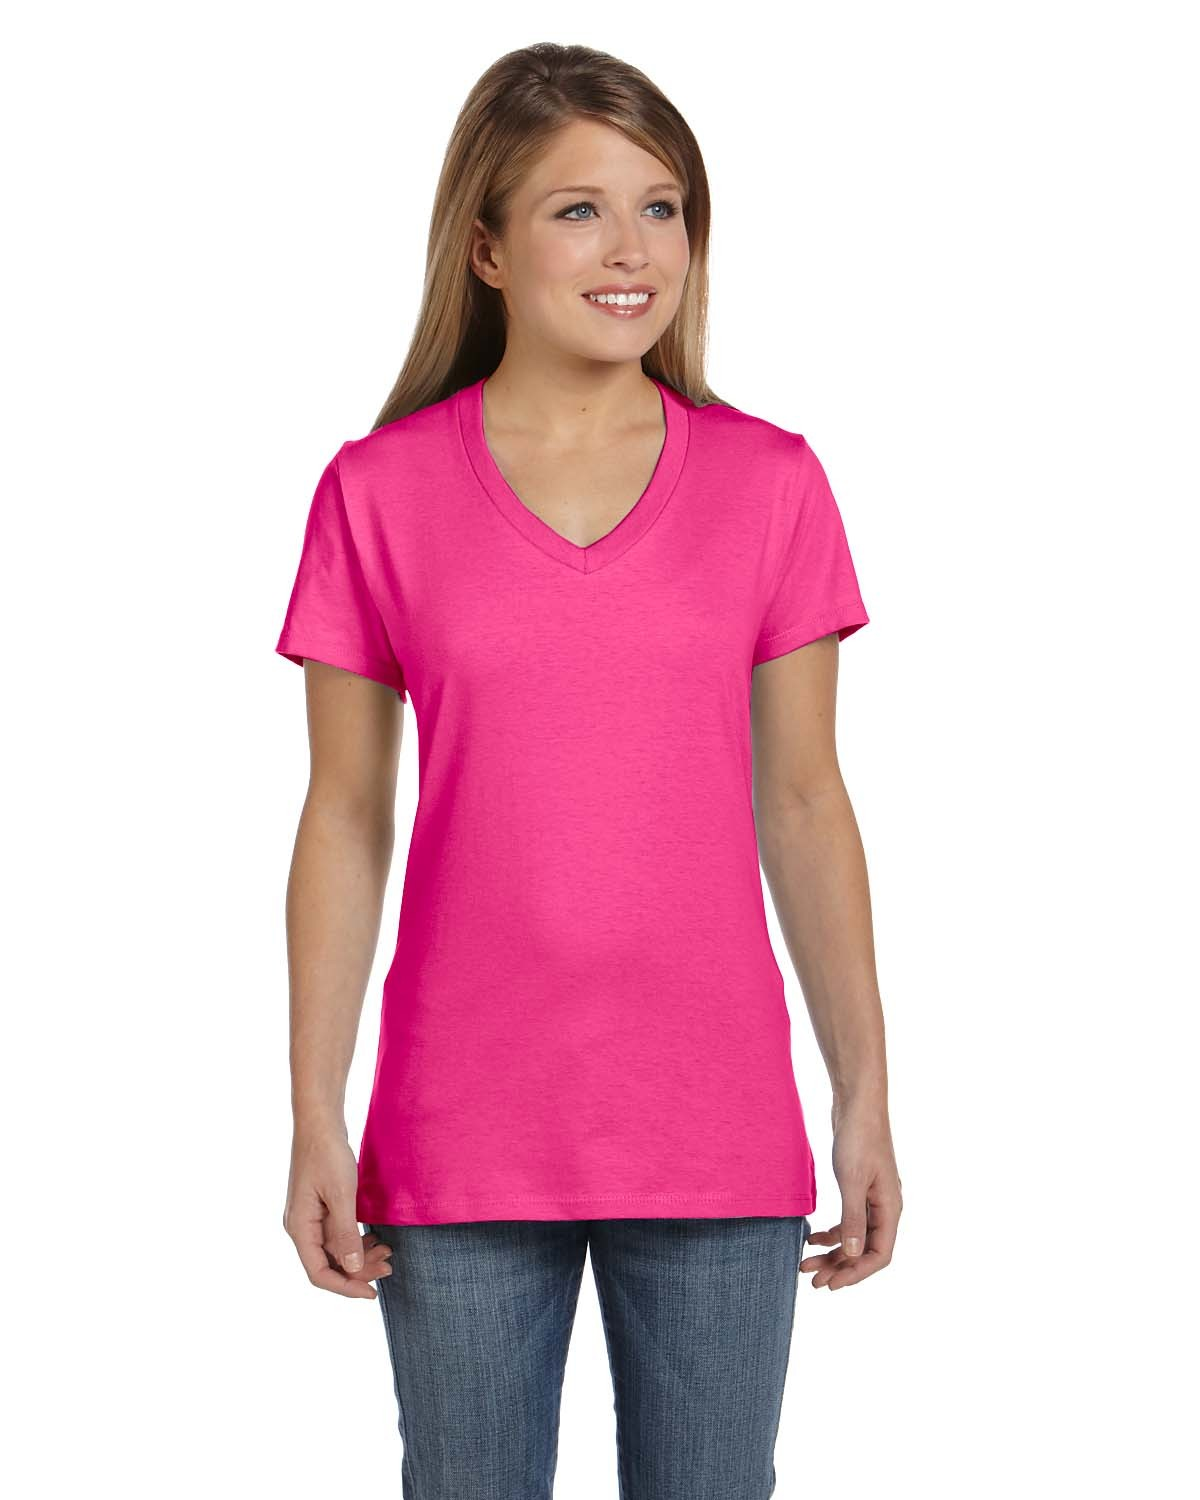 S04V Hanes WOW PINK